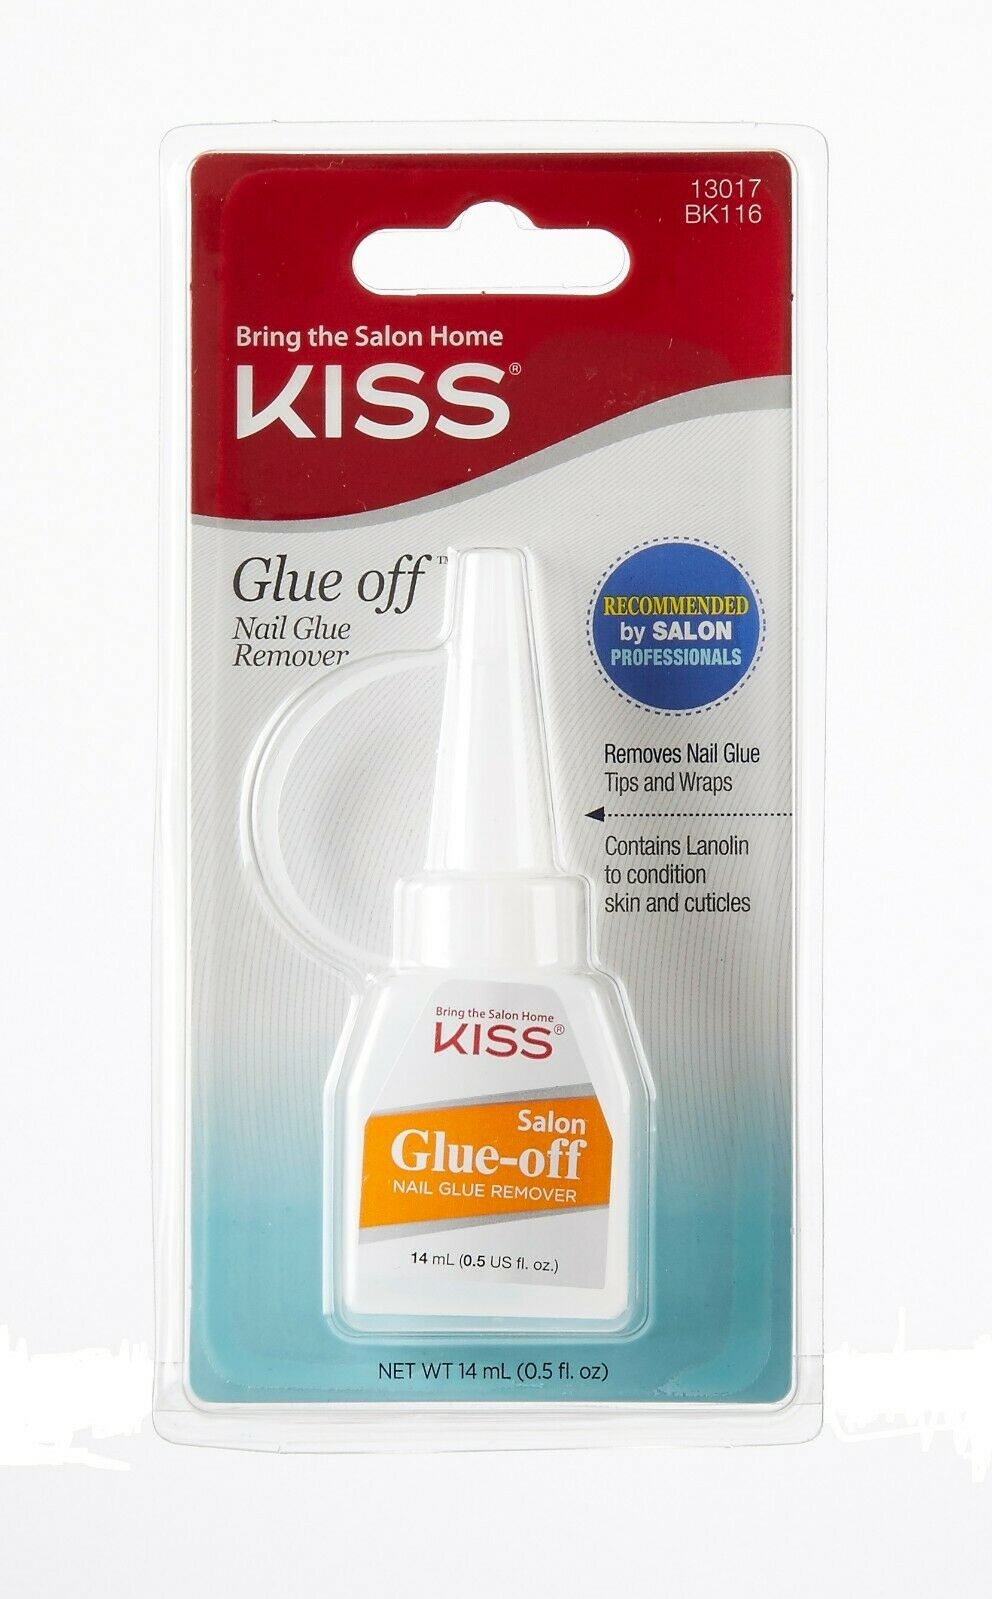 Kiss Glue Off Nail Glue Remover